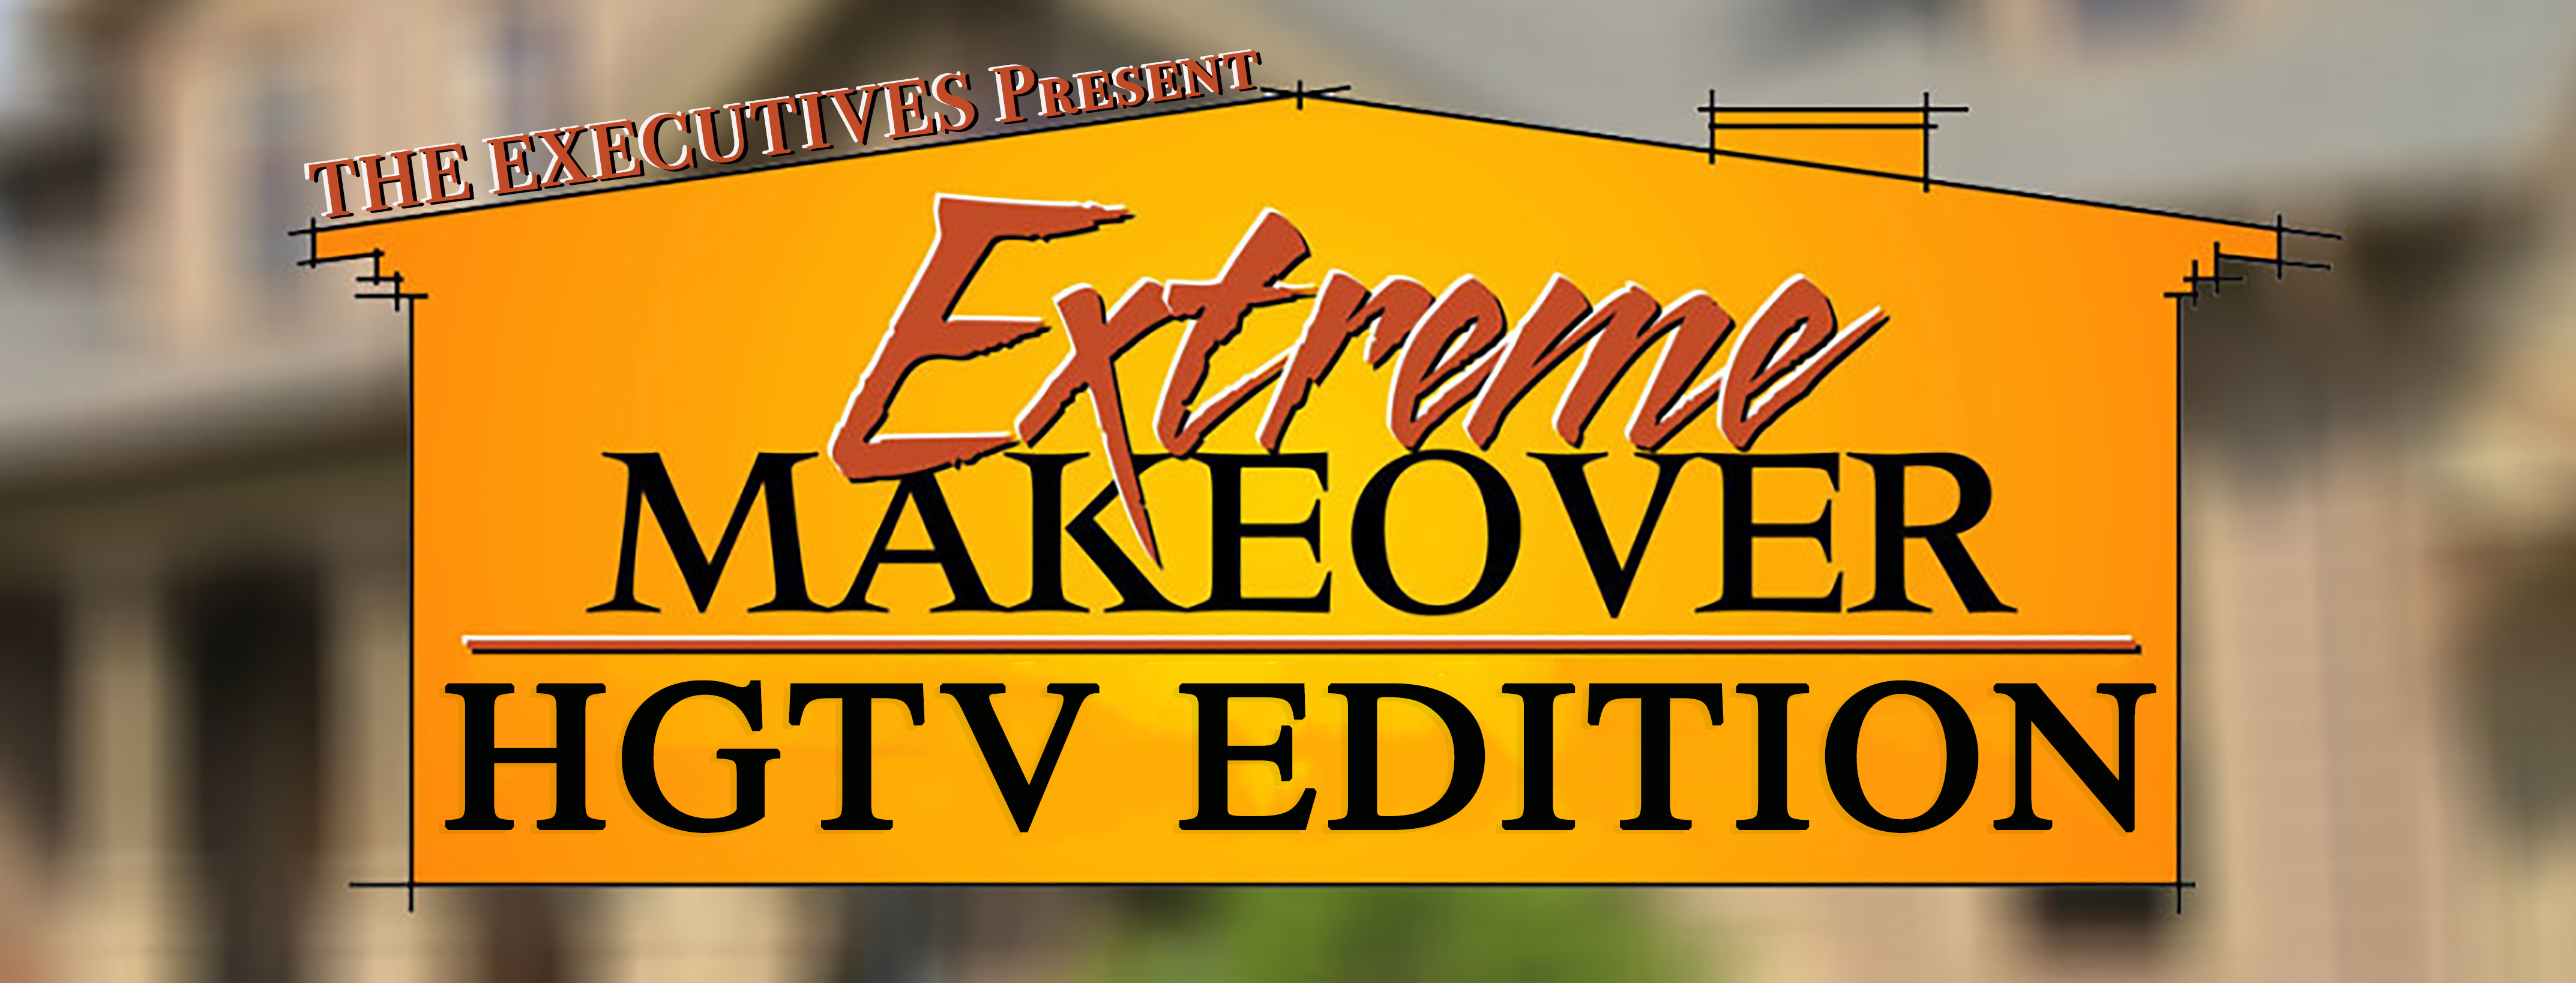 The Executives Present: Extreme Makeover HGTV Edition